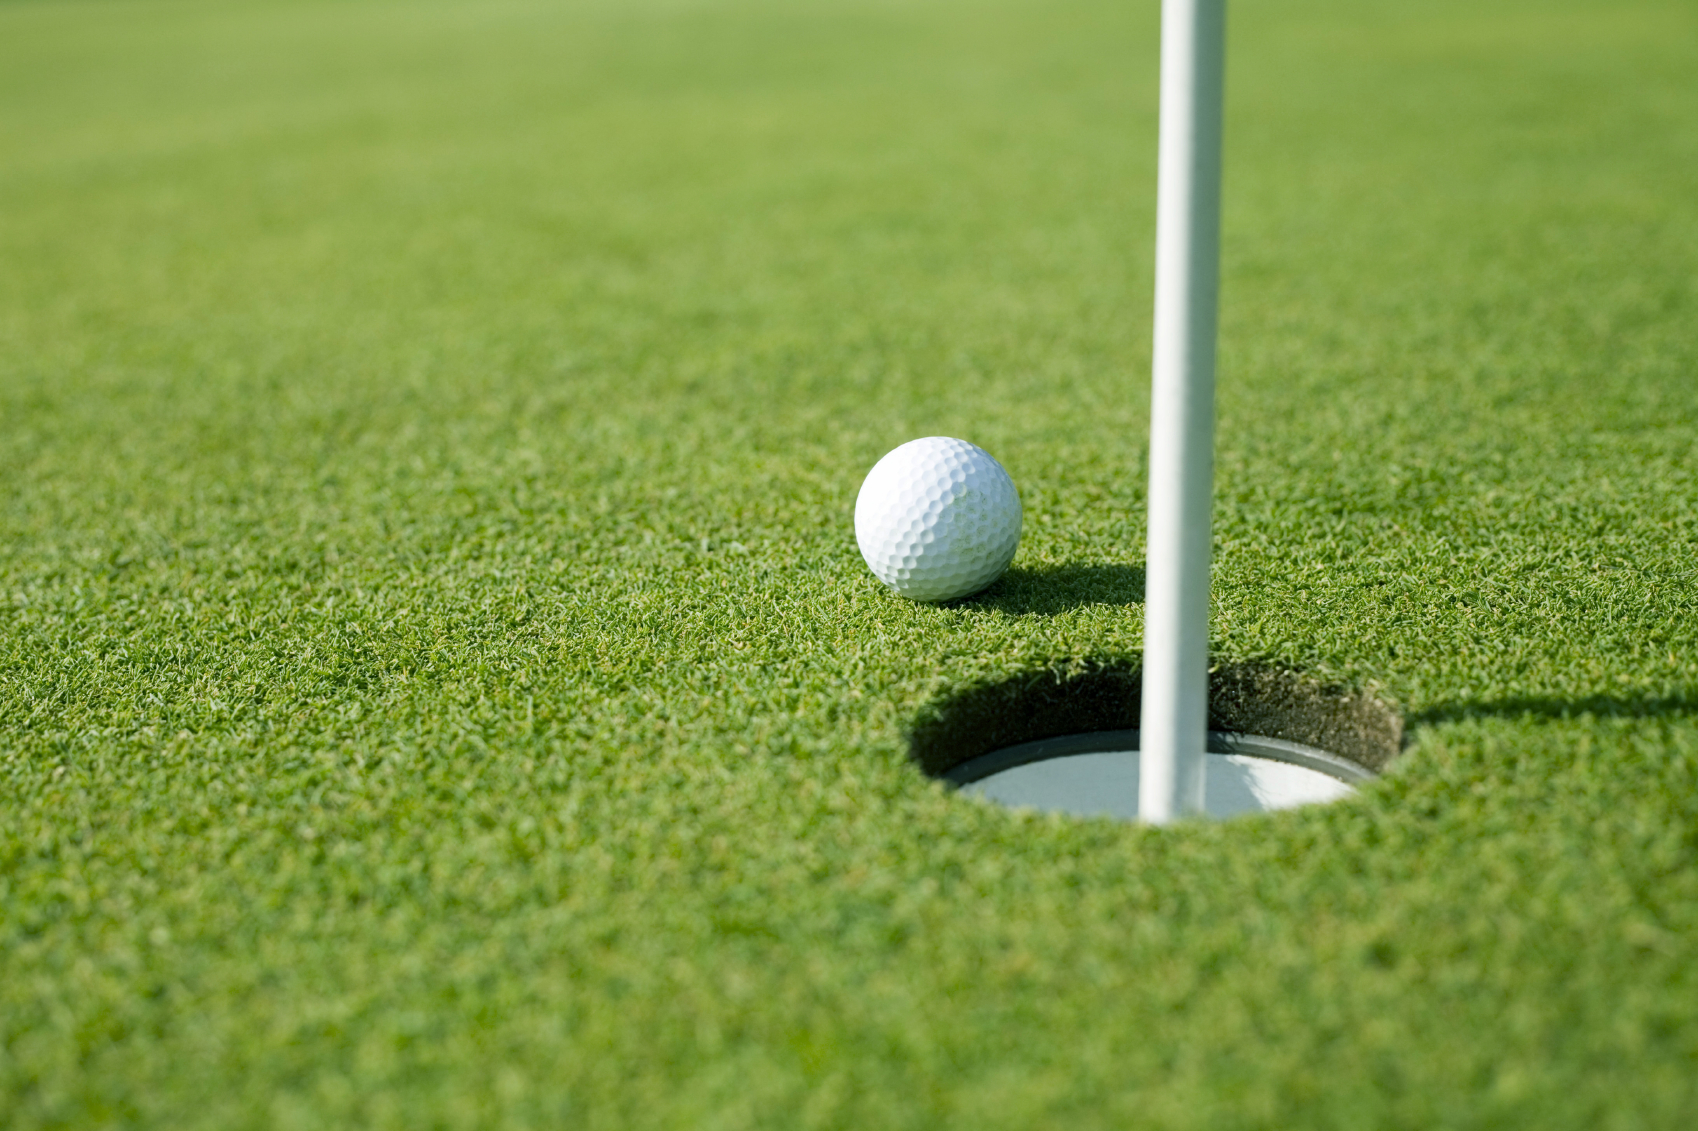 golf balls supplier in uae printing press dubai